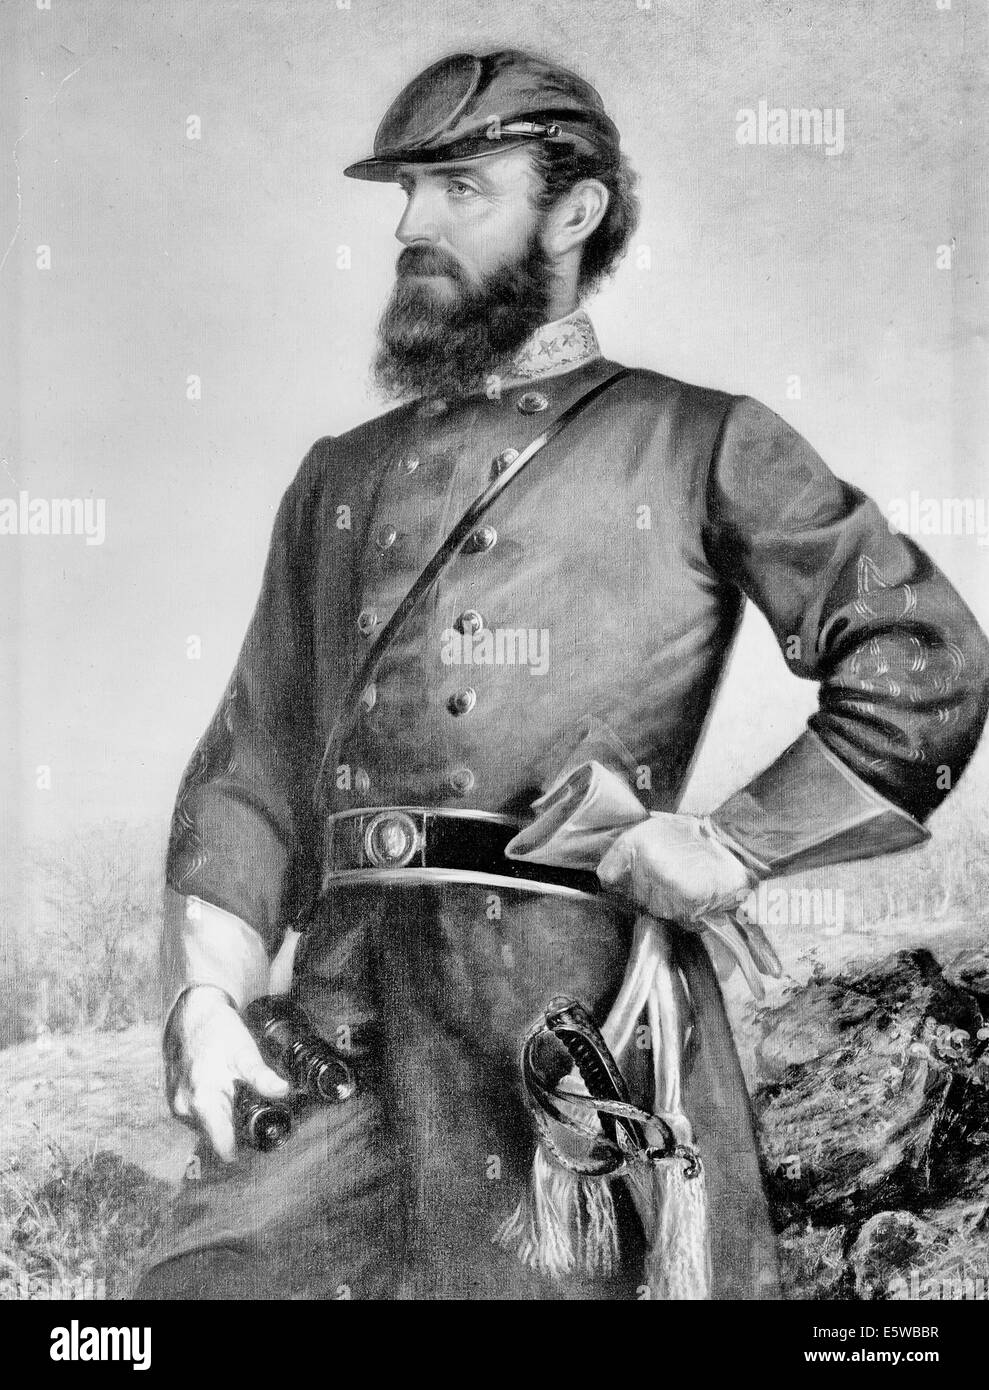 General Thomas 'Stonewall' Jackson, Confederate General - Stock Image